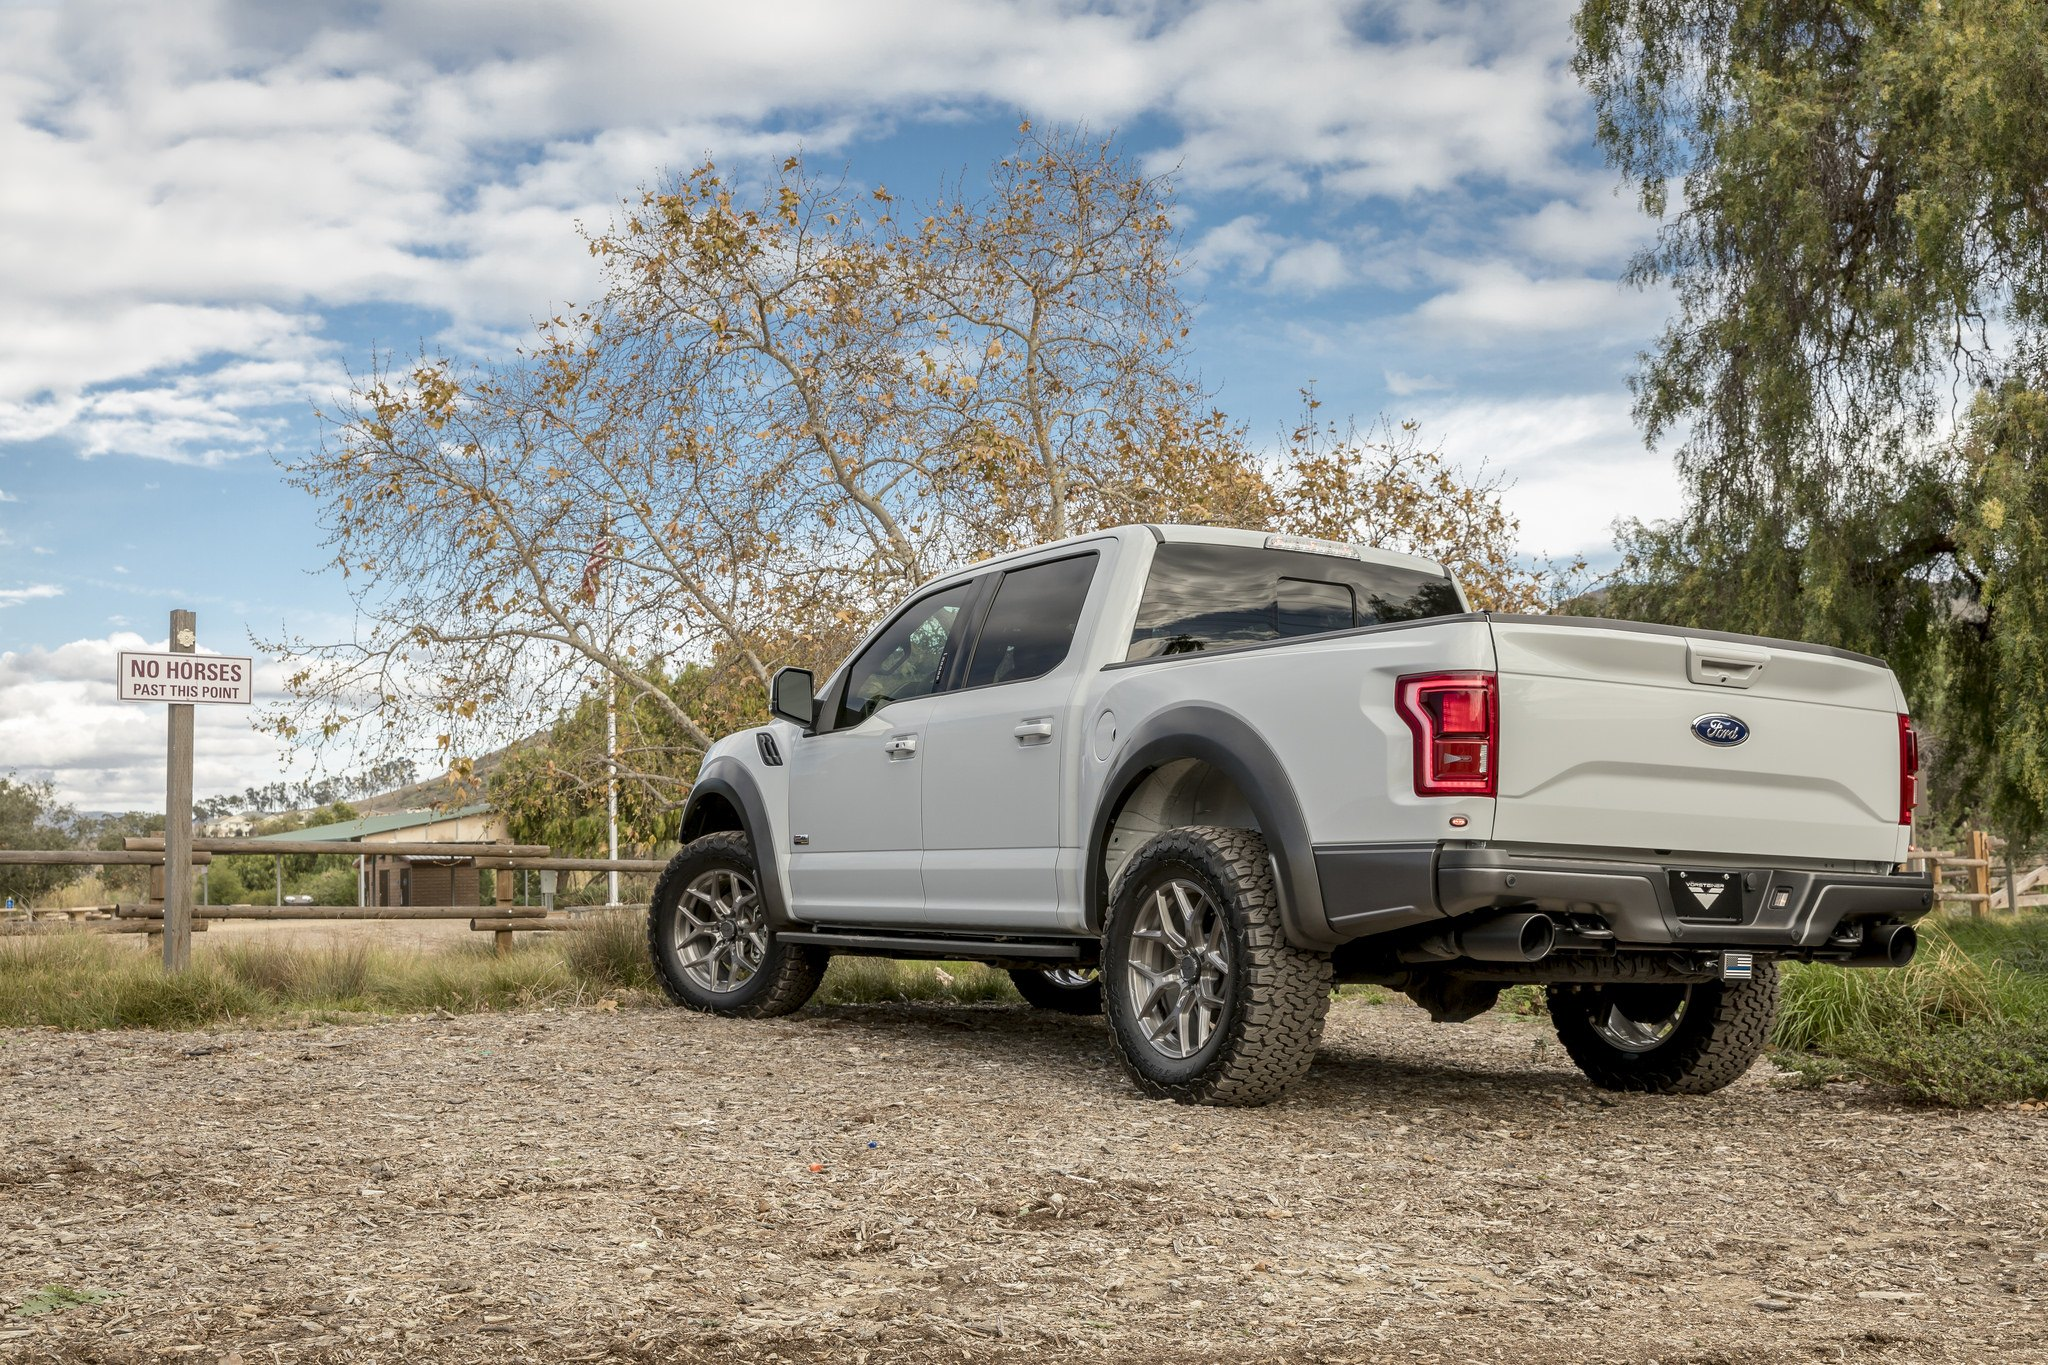 Aftermarket Rear Bumper on Gray Lifted Ford F-150 - Photo by Vorsteiner